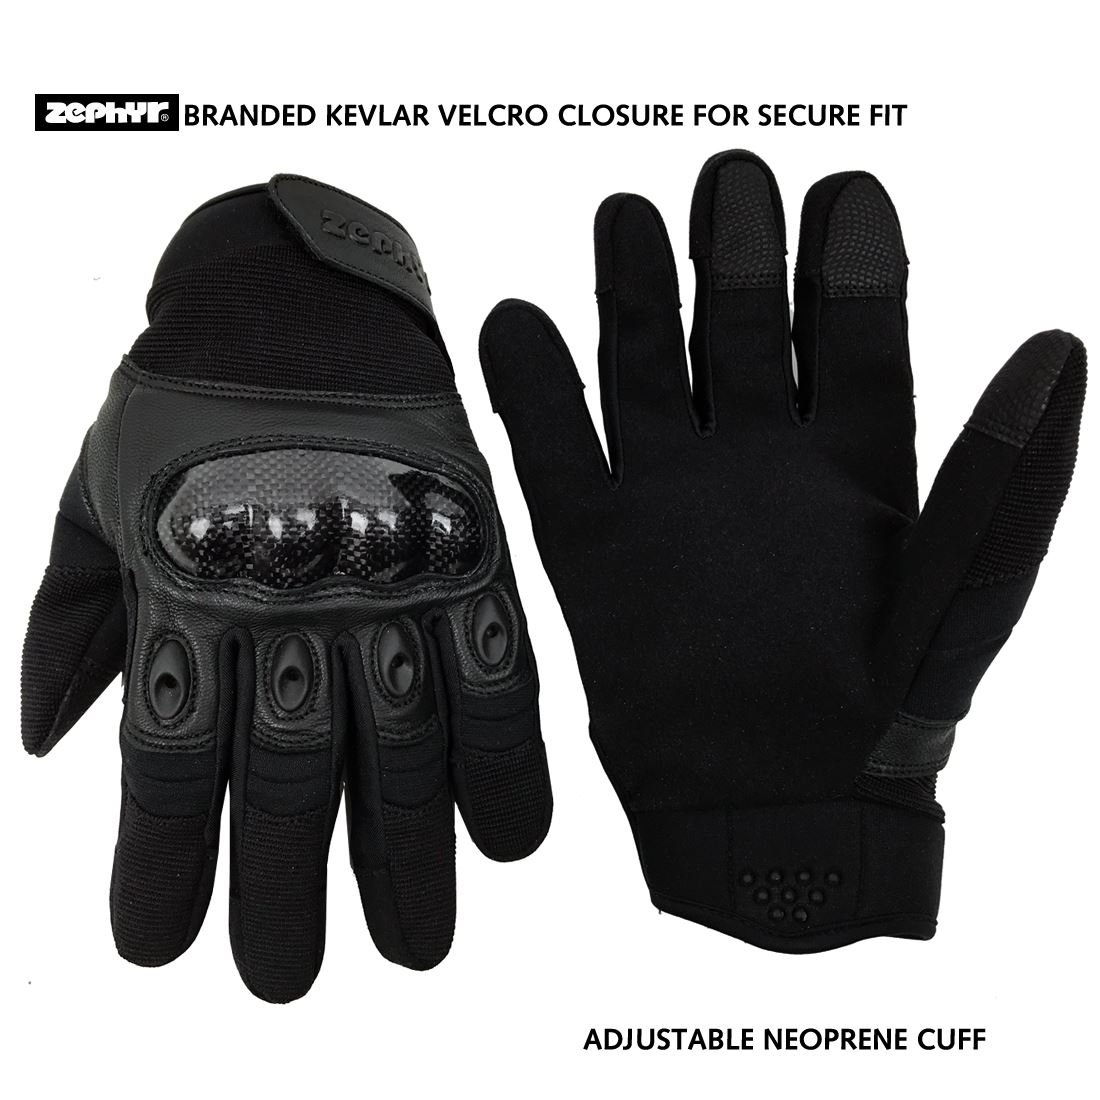 Zephyr Tactical Full Finger Carbon Fiber Knuckle Glovess with Touchscreen Technology - Black - X-Large by Zephyr Tactical